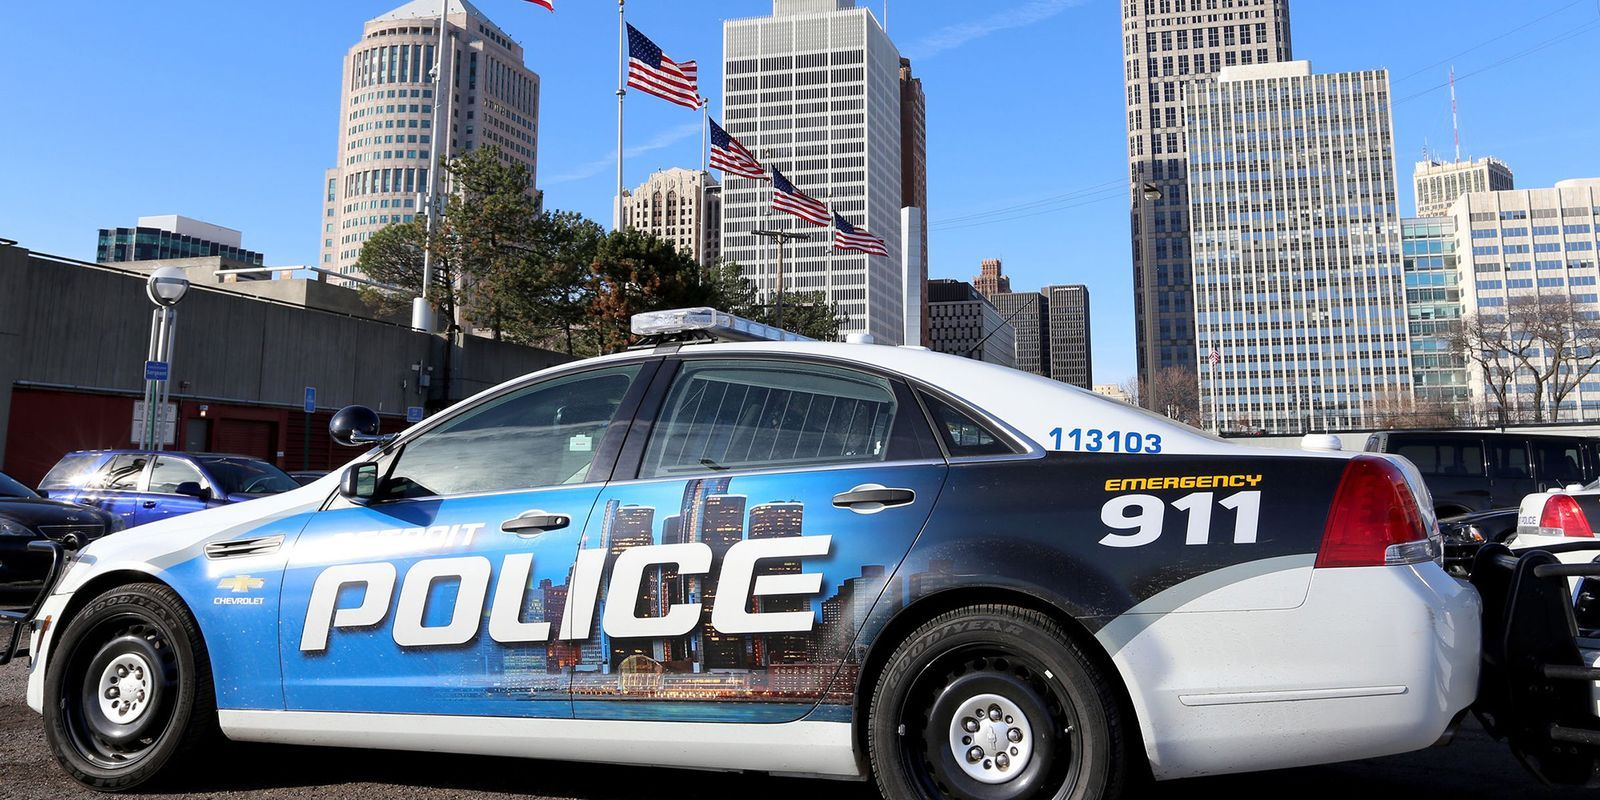 The best prep course for the Detroit police is the Michigan Police Prep by Sgt. Godoy